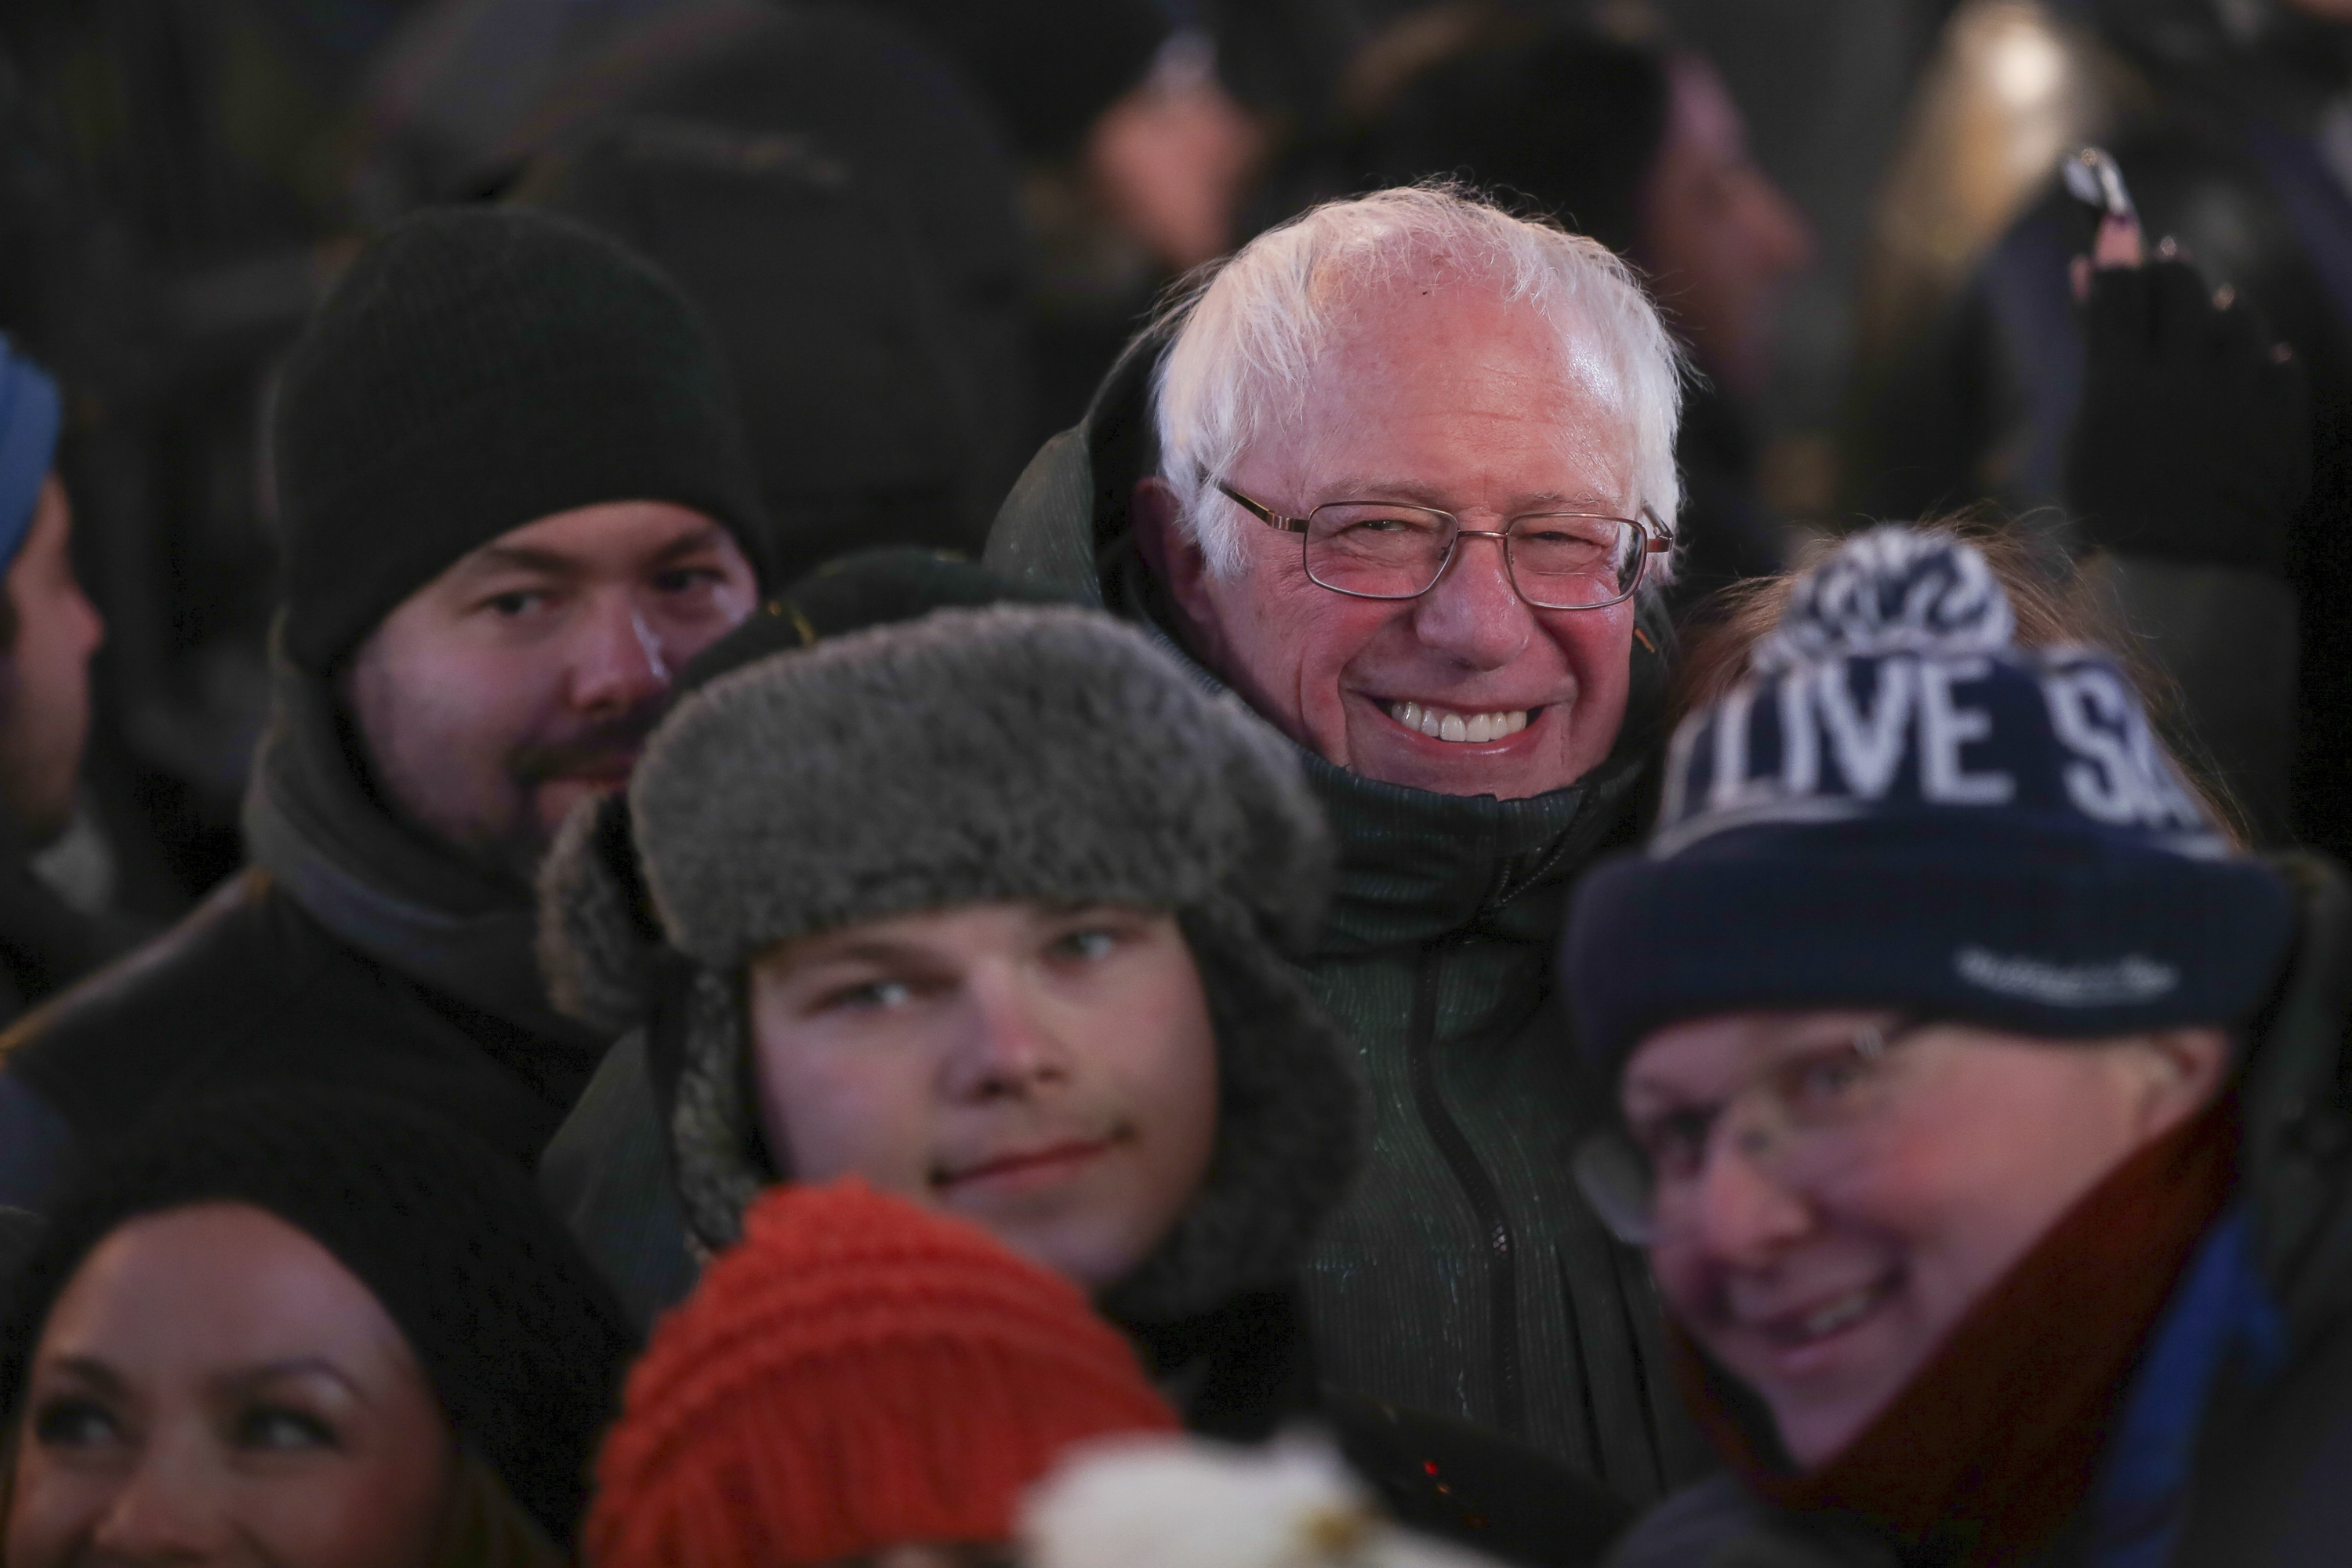 <div class='meta'><div class='origin-logo' data-origin='AP'></div><span class='caption-text' data-credit='Brent N. Clarke/Invision/AP'>Senator Bernie Sanders attends the New Year's Eve celebration in Times Square on Sunday, Dec. 31, 2017, in New York. (Photo by Brent N. Clarke/Invision/AP)</span></div>